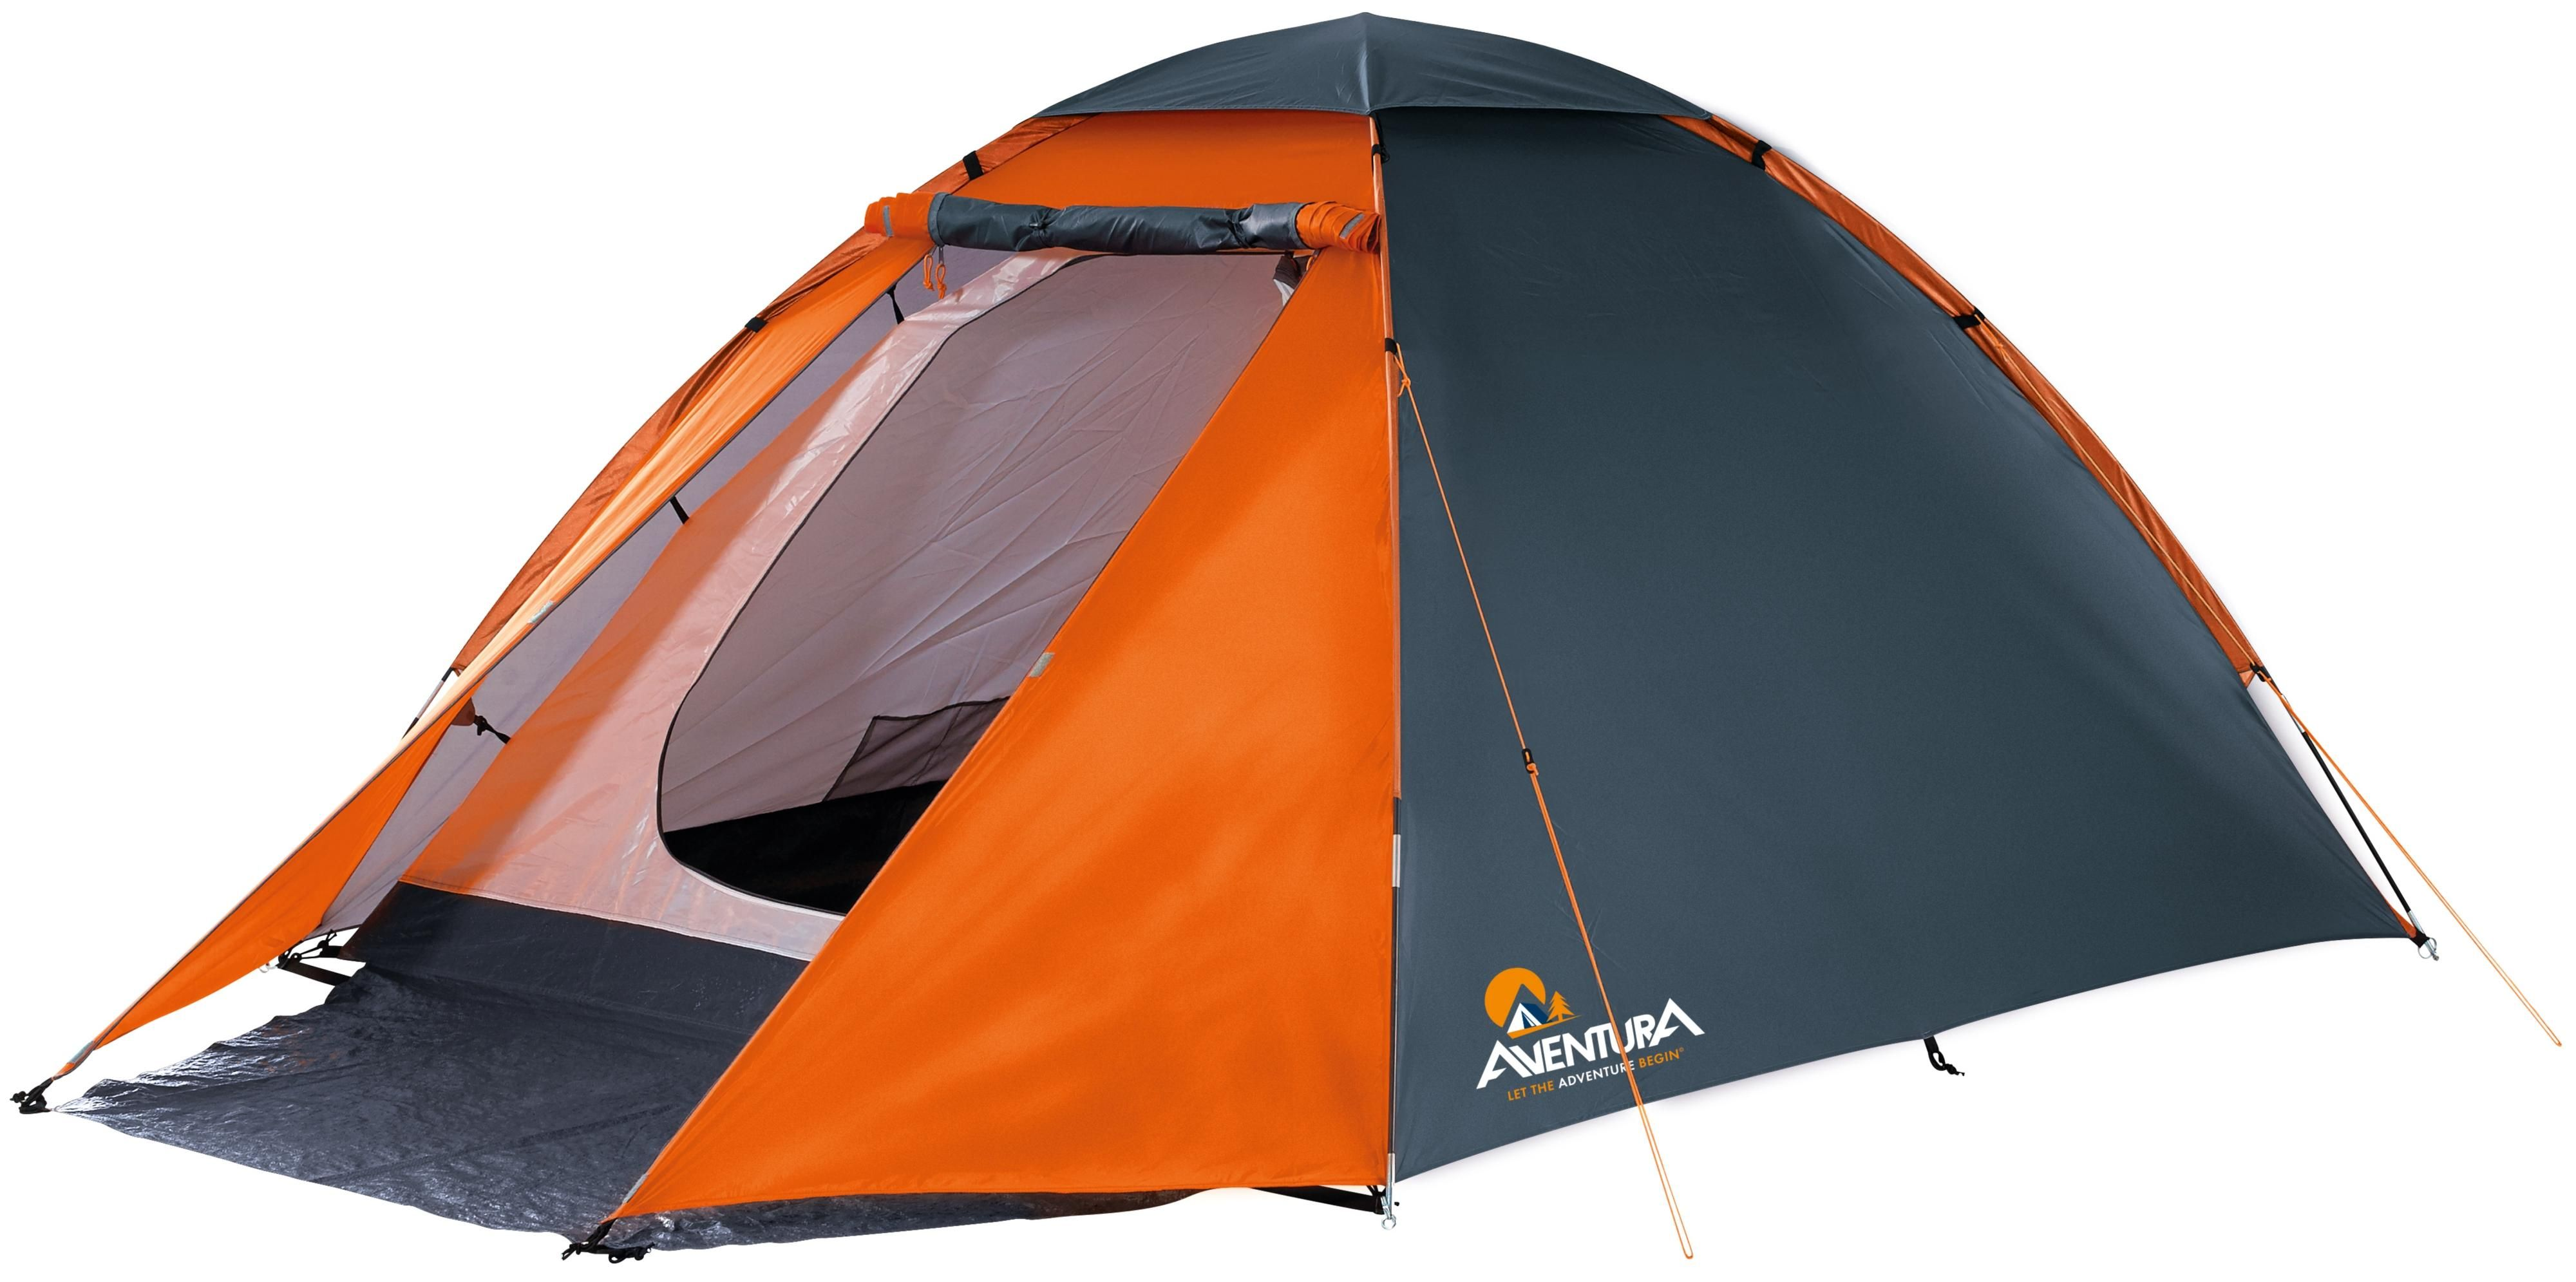 The Aventura 3 Man Dome Tent is easy to pitch in approximately 15 minutes.  sc 1 st  Pinterest & The Aventura 3 Man Dome Tent is easy to pitch in approximately 15 ...